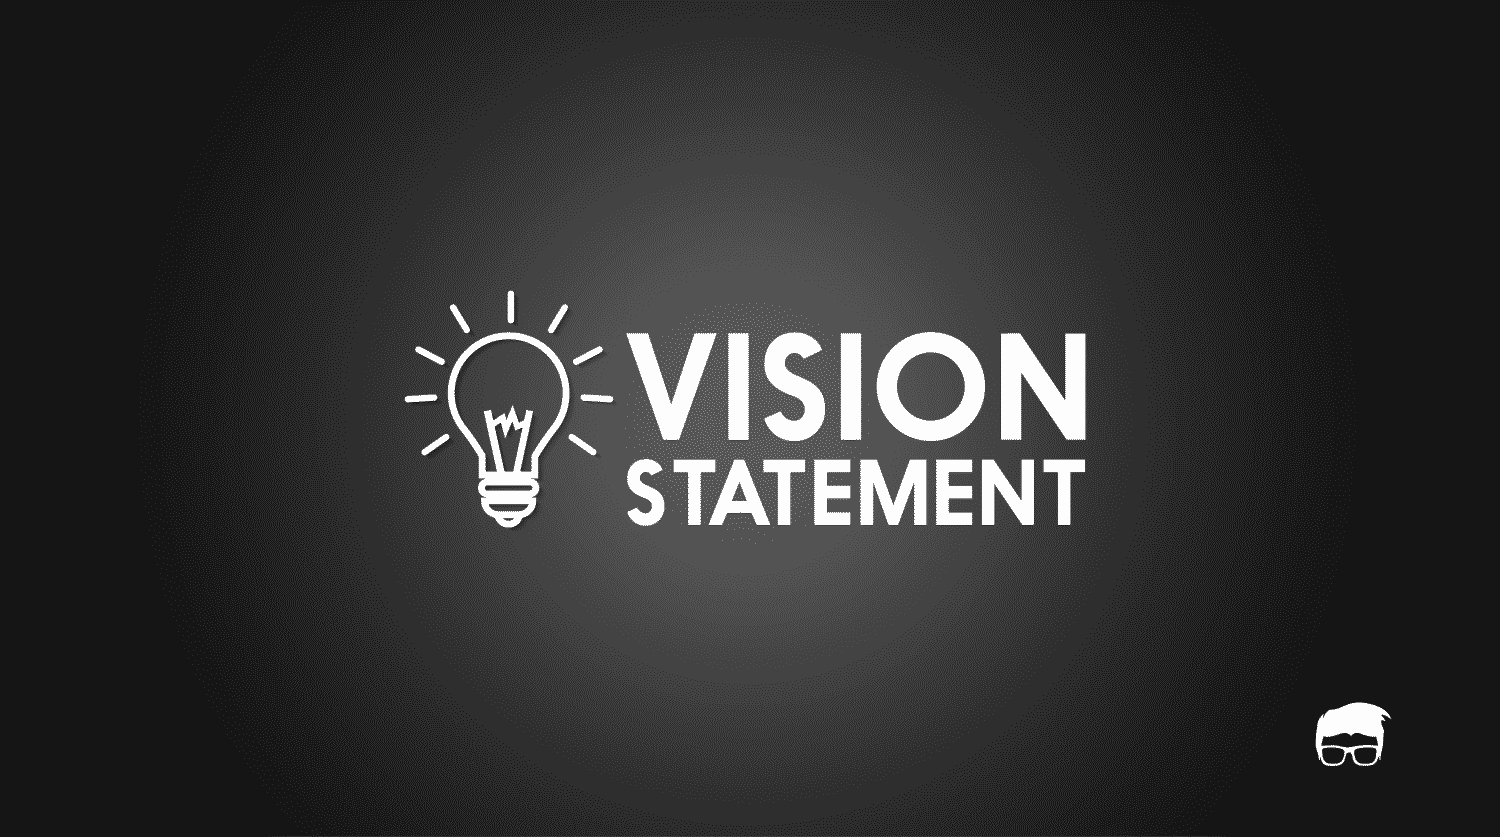 Mission statement vision statement